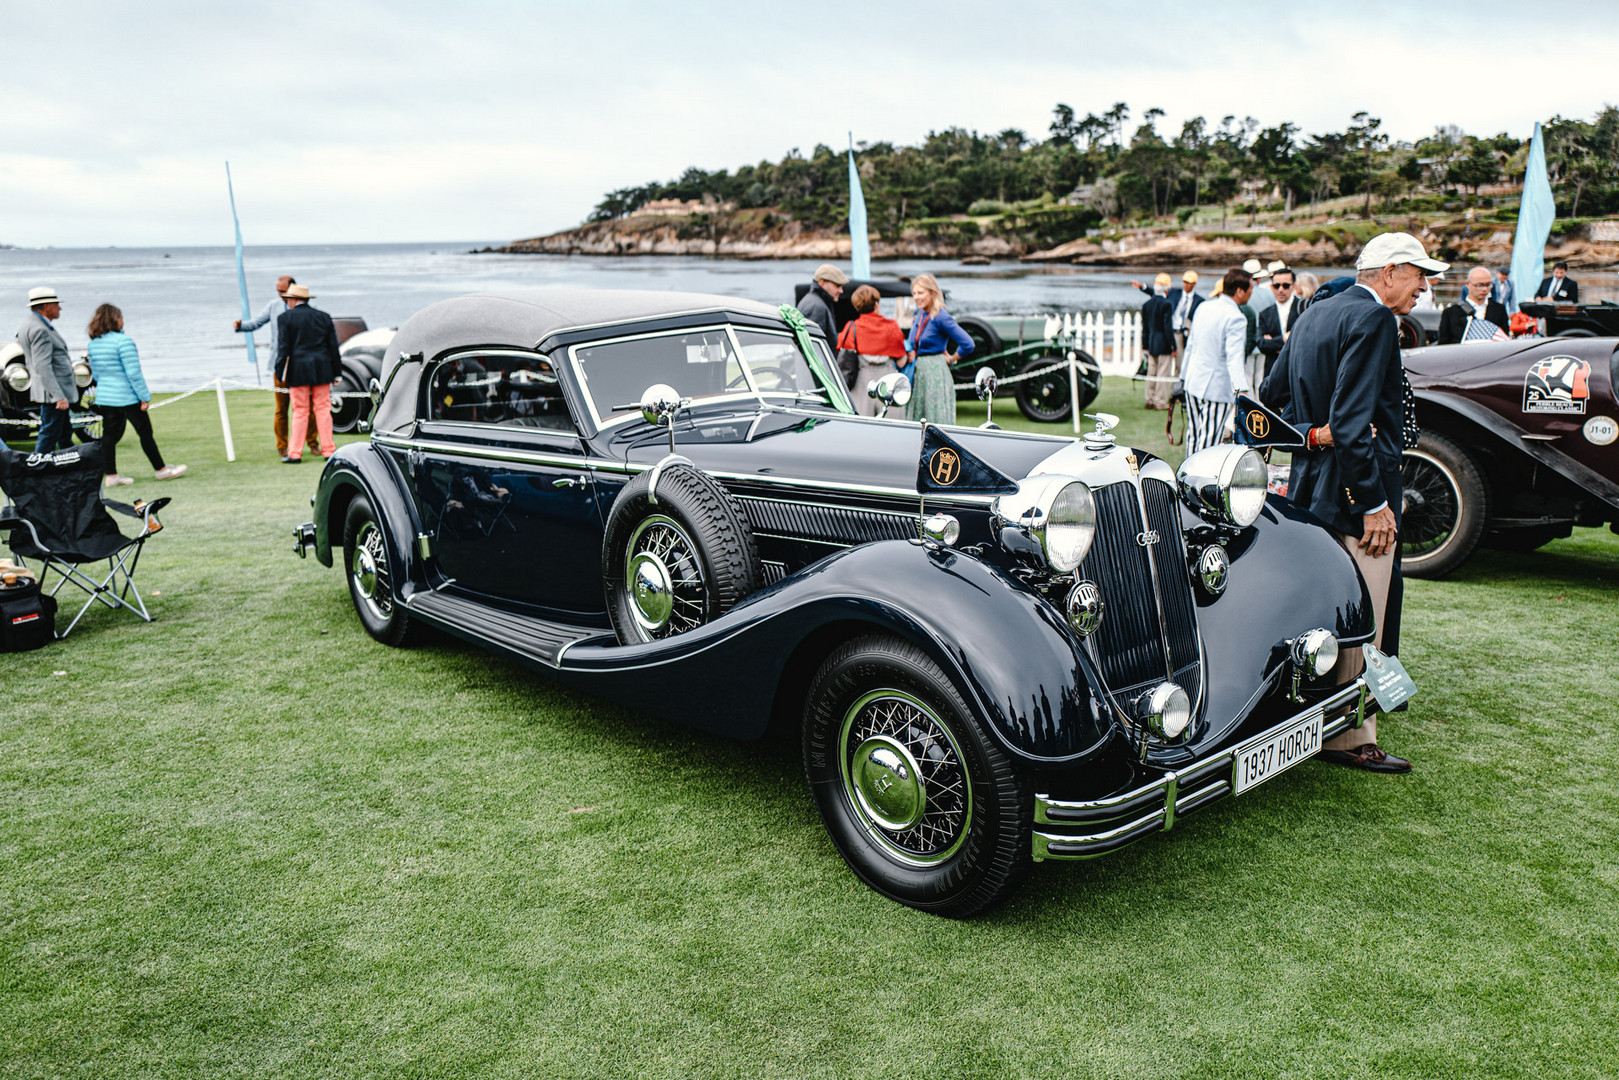 Vintage Car Pebble Beach